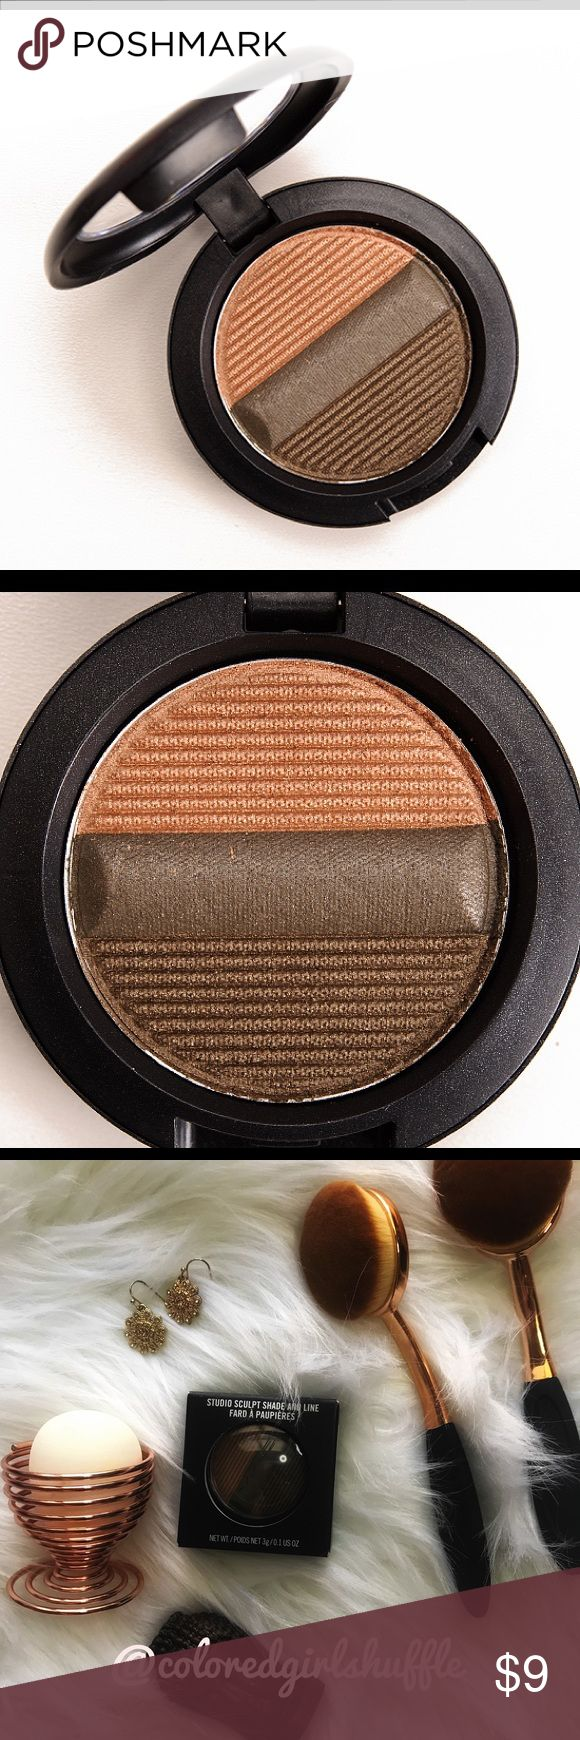 """MAC Sculpt, Shade and Line Eyeshadow Olive Blend MAC Sculpt, Shade and Line Olive Blend Eyeshadow. The Studio Sculpt Shade & Line Eyeshadows can be used wet """"for a defined look with super-saturated colour"""" or dry for """"medium buildable coverage.""""   -Never used -Still in original box -Box in good condition with slight marks and wear which are depicted in the pictures  Feel free to make any offer, ask any questions or suggest a trade! ❤️❤️❤️ Thanks for checking my closet out and Happy Poshing…"""